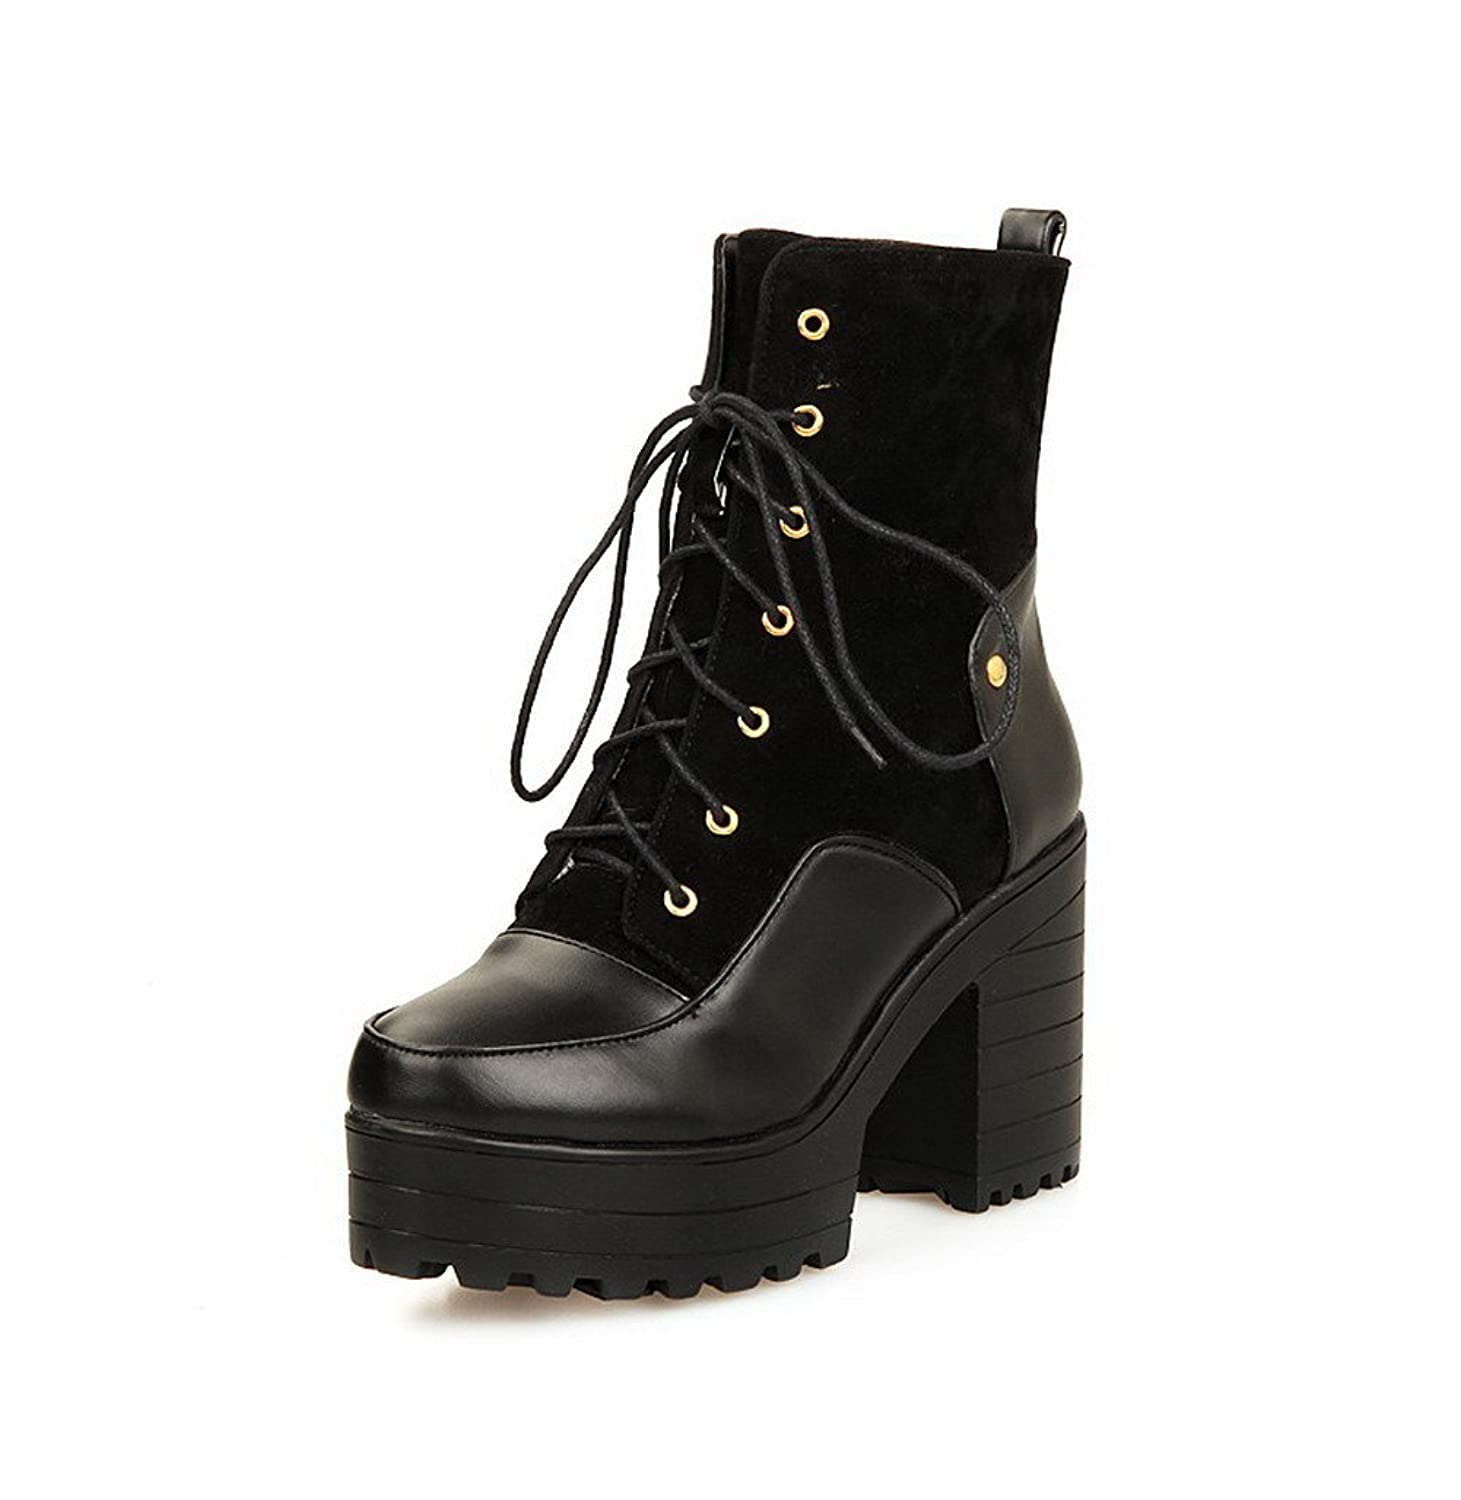 AllhqFashion Women's Soft Material Round Closed Toe Assorted Color Low-top High-Heels Boots